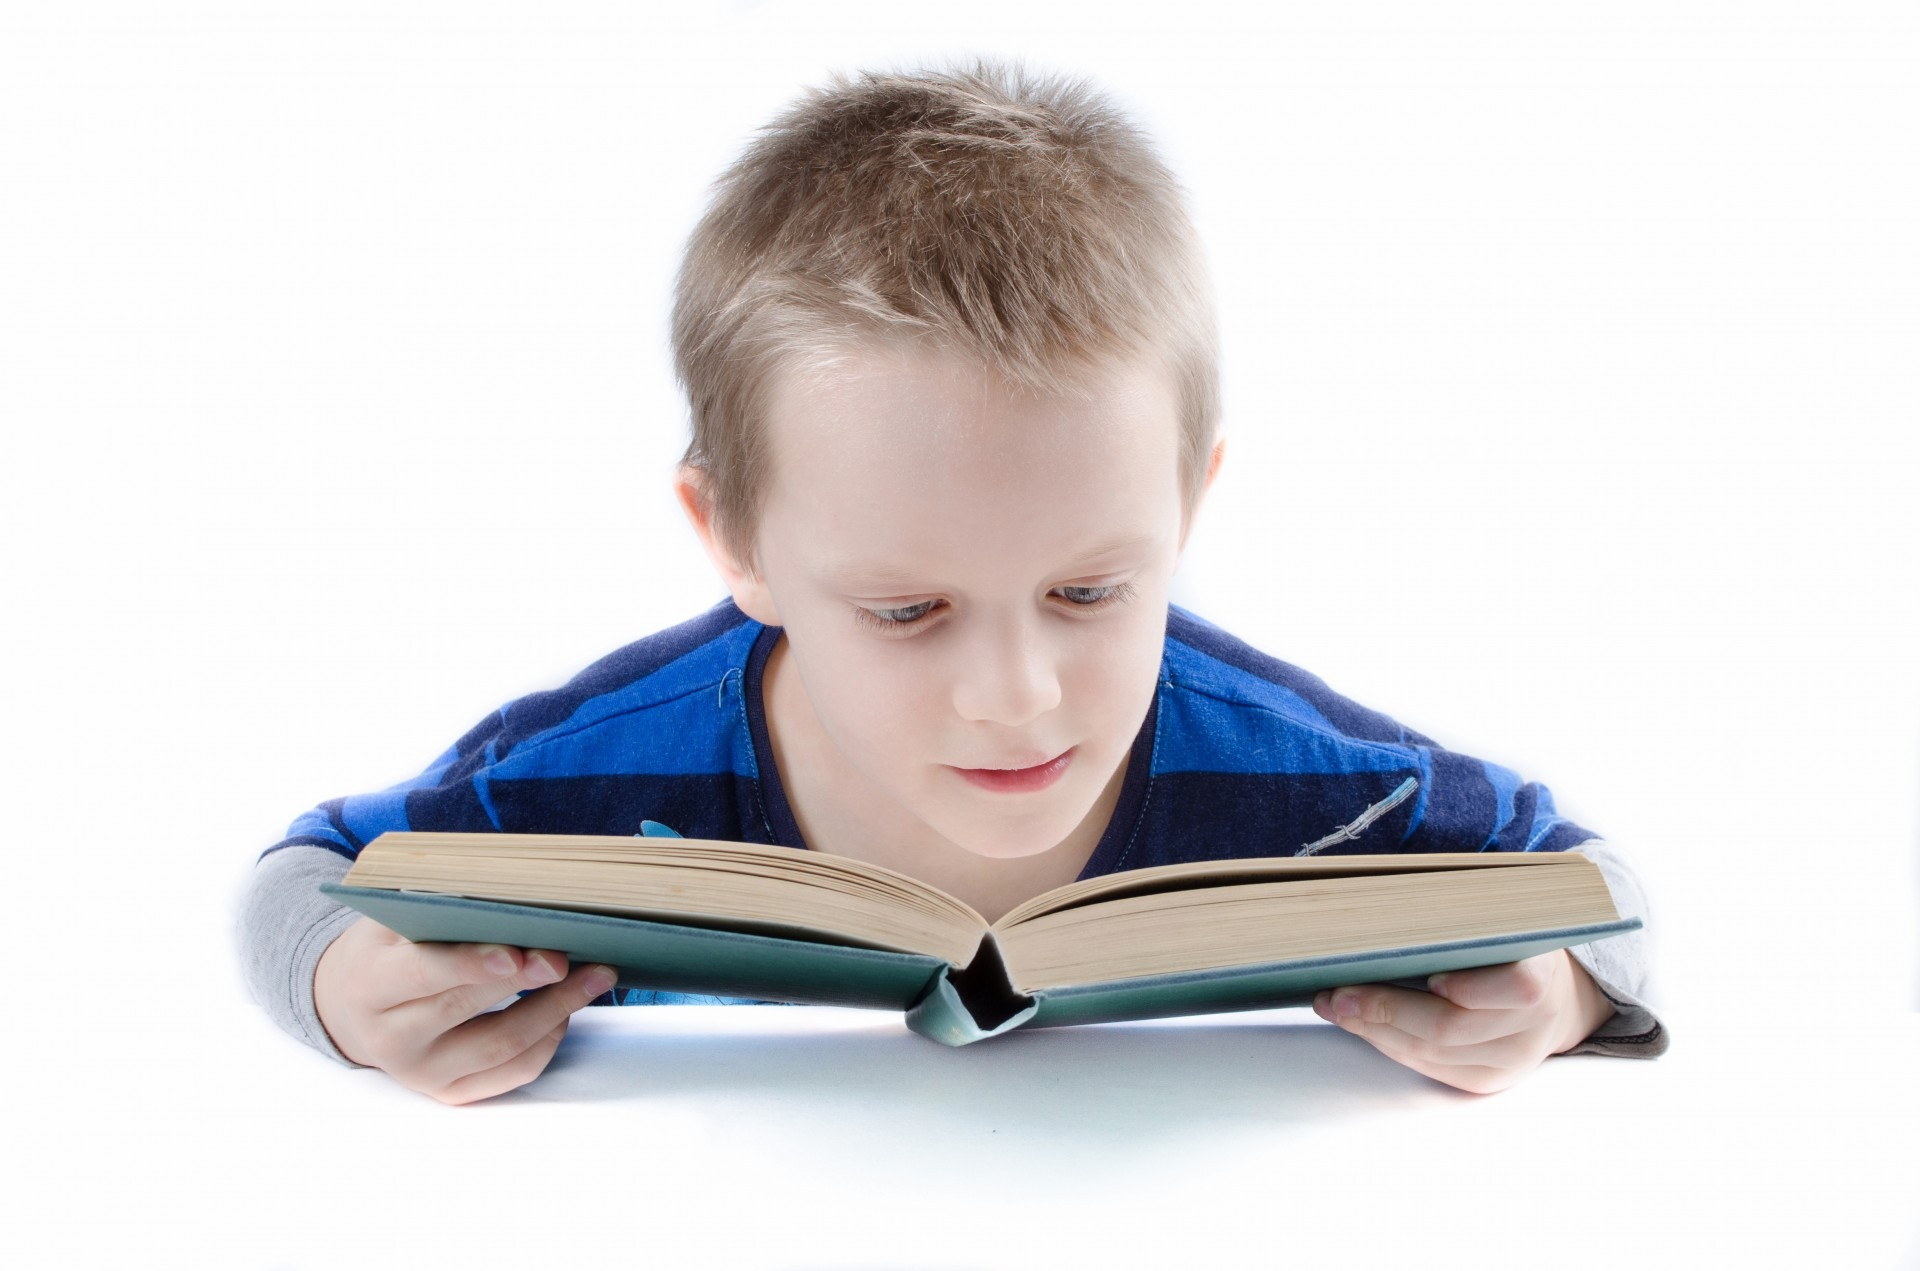 Click here to watch how a 3 year old learns to read~!